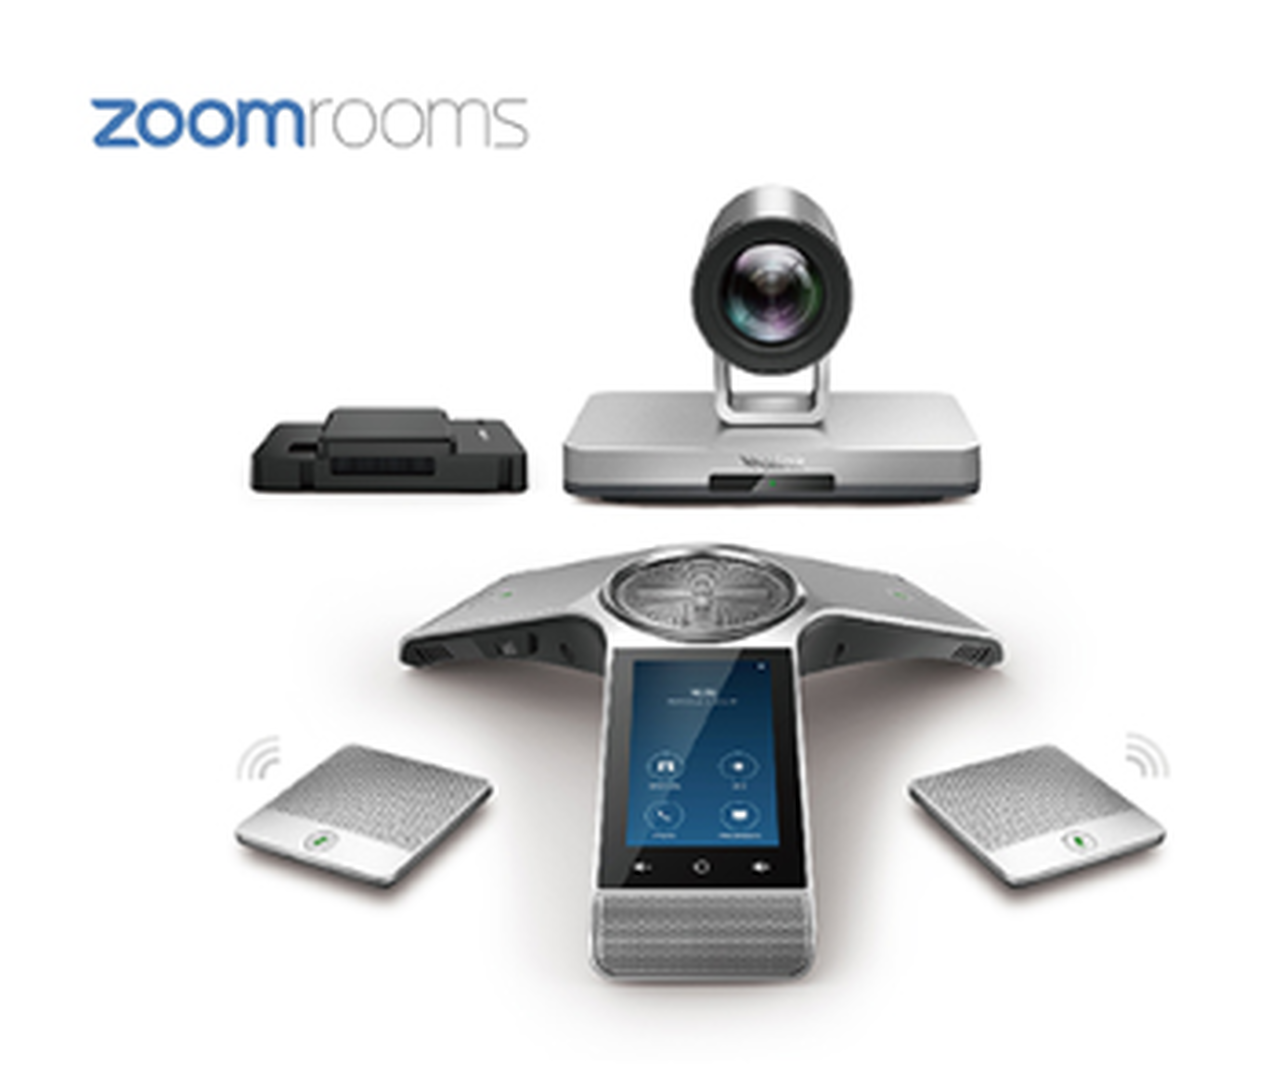 Yealink CP960-UVC Zoom Room Kits Specification